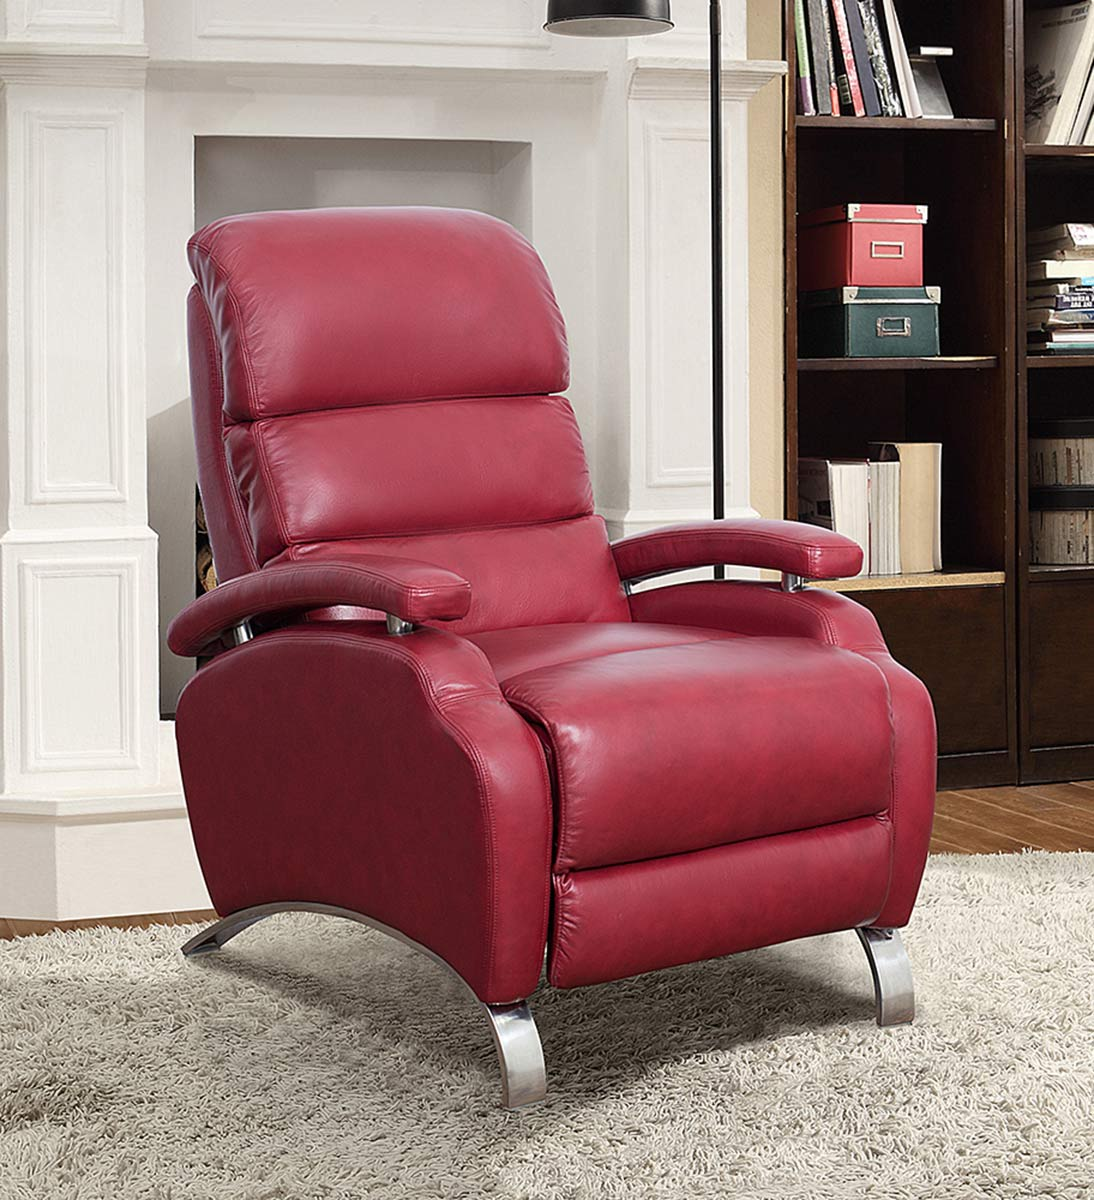 Barcalounger Giovanni Recliner Chair - Stargo Red/Leather Match